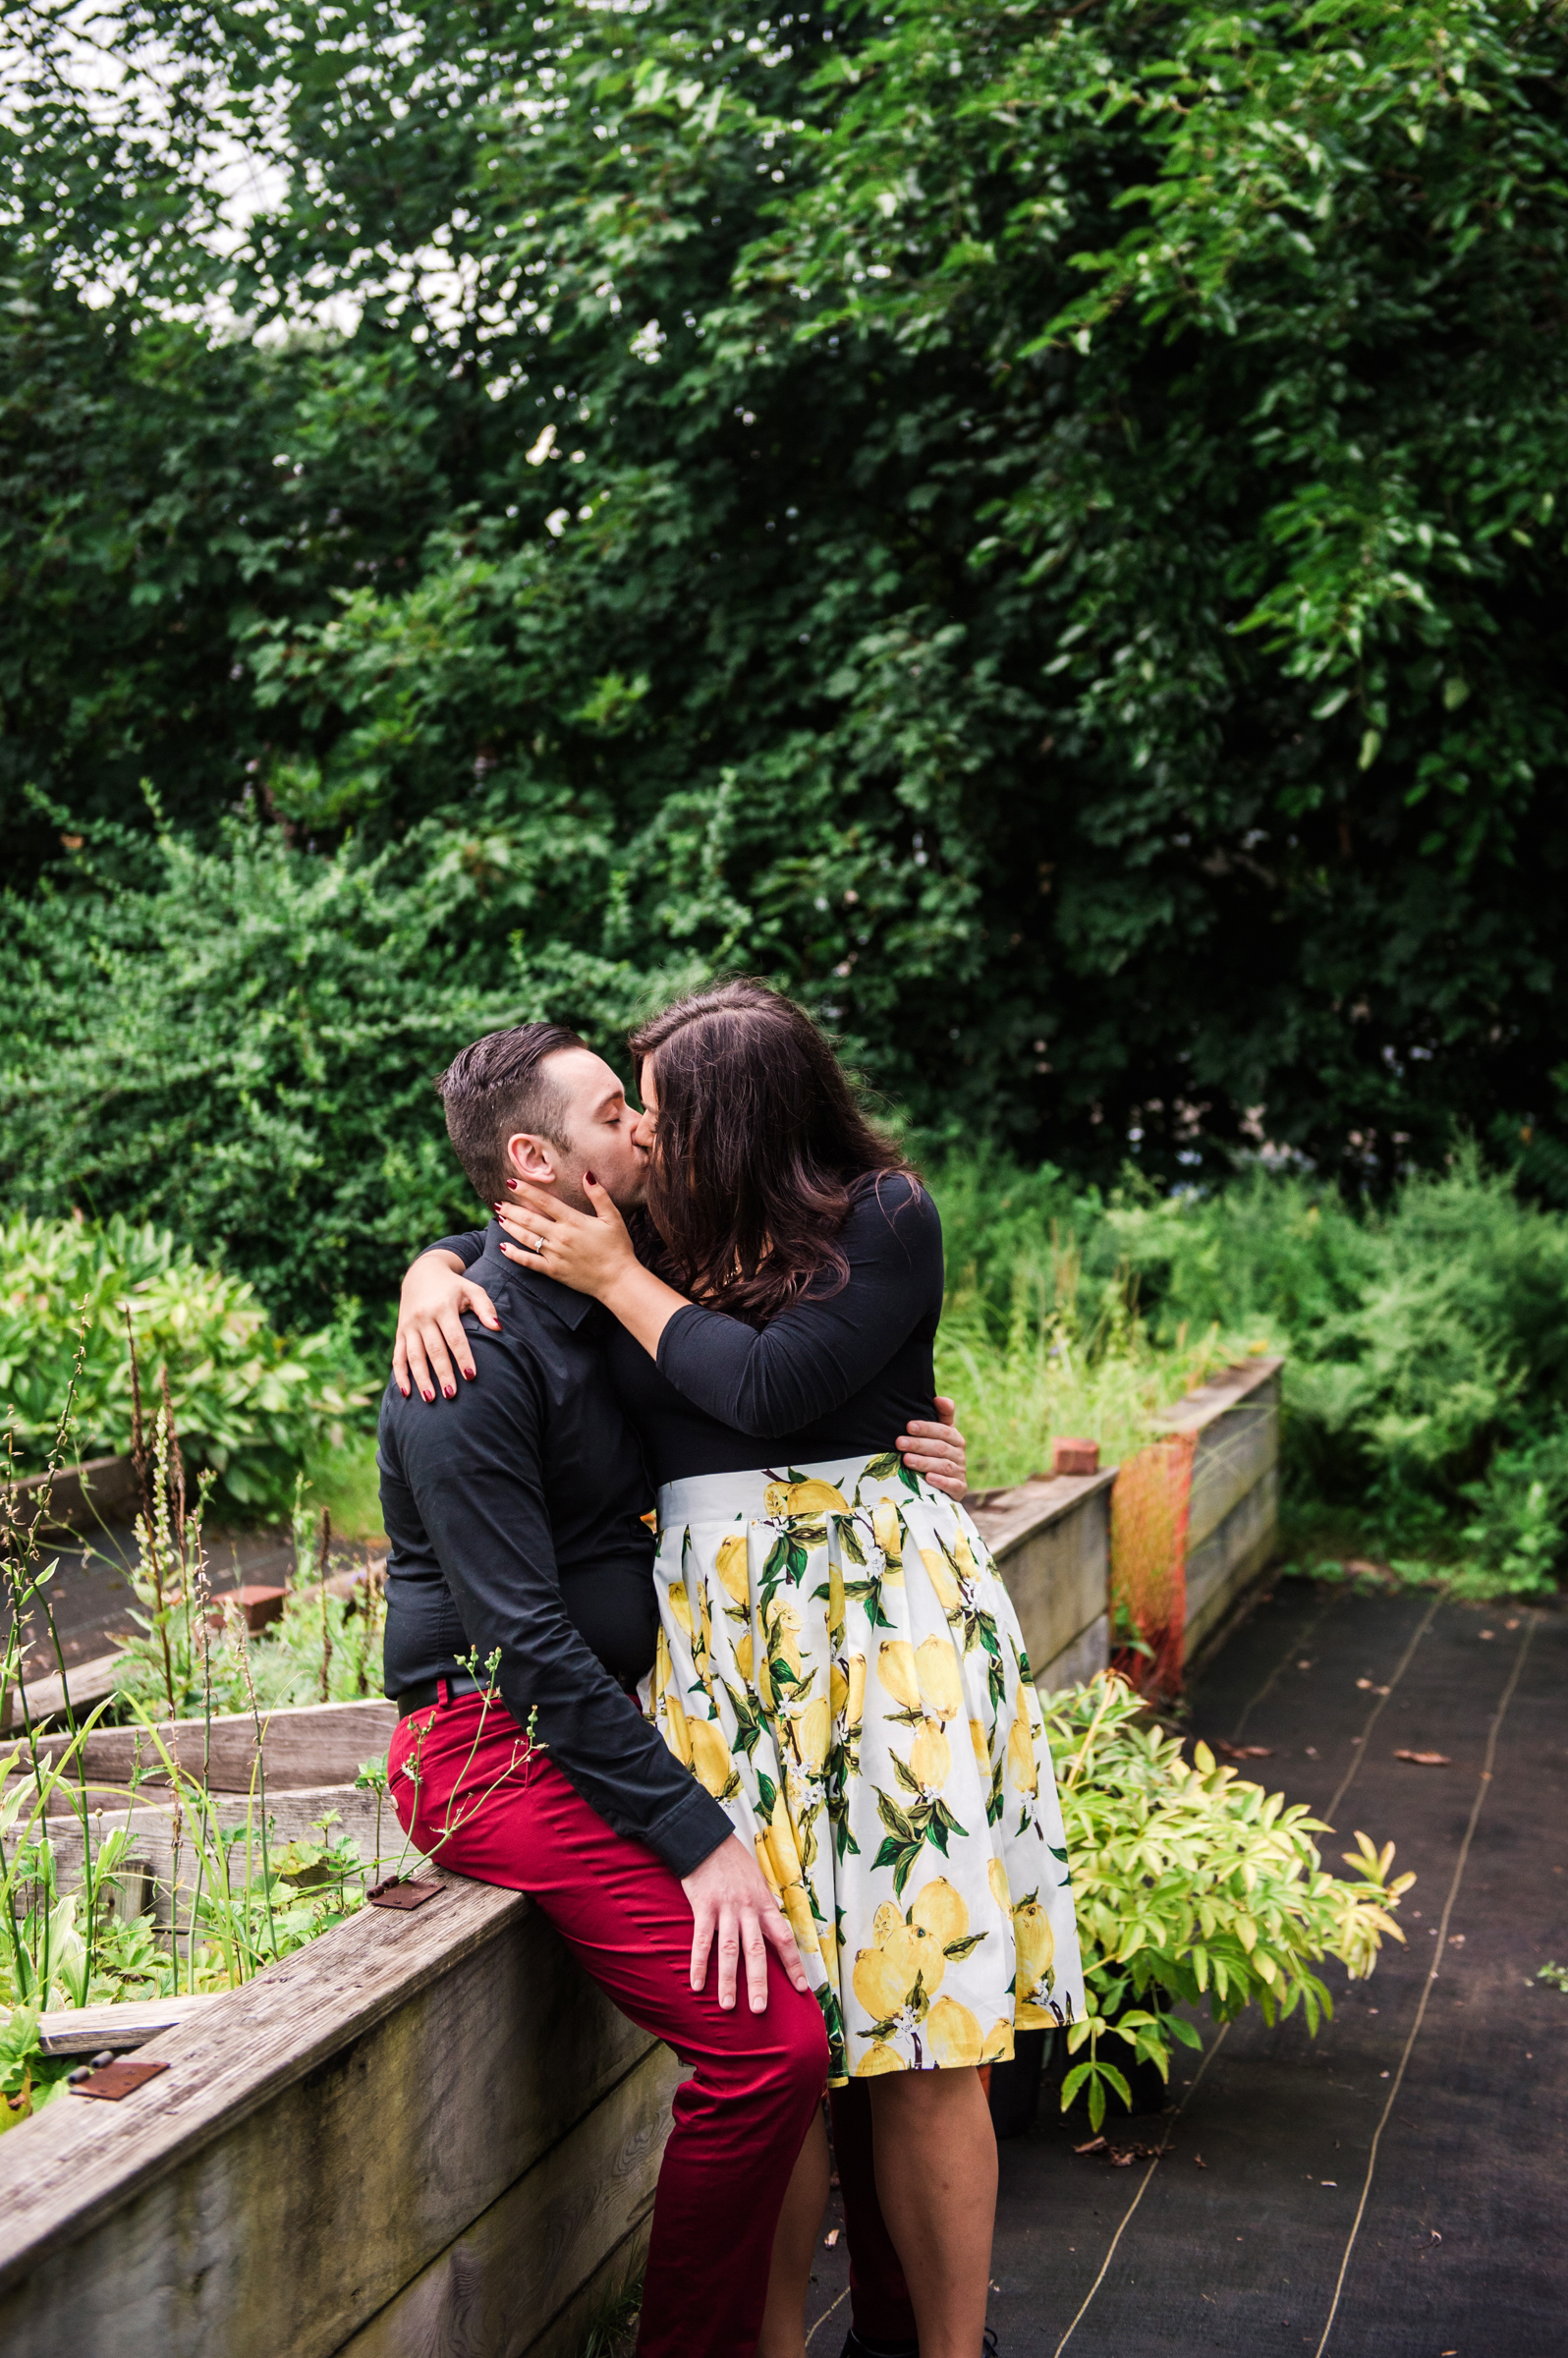 George_Eastman_House_Rochester_Engagement_Session_JILL_STUDIO_Rochester_NY_Photographer_DSC_6437.jpg